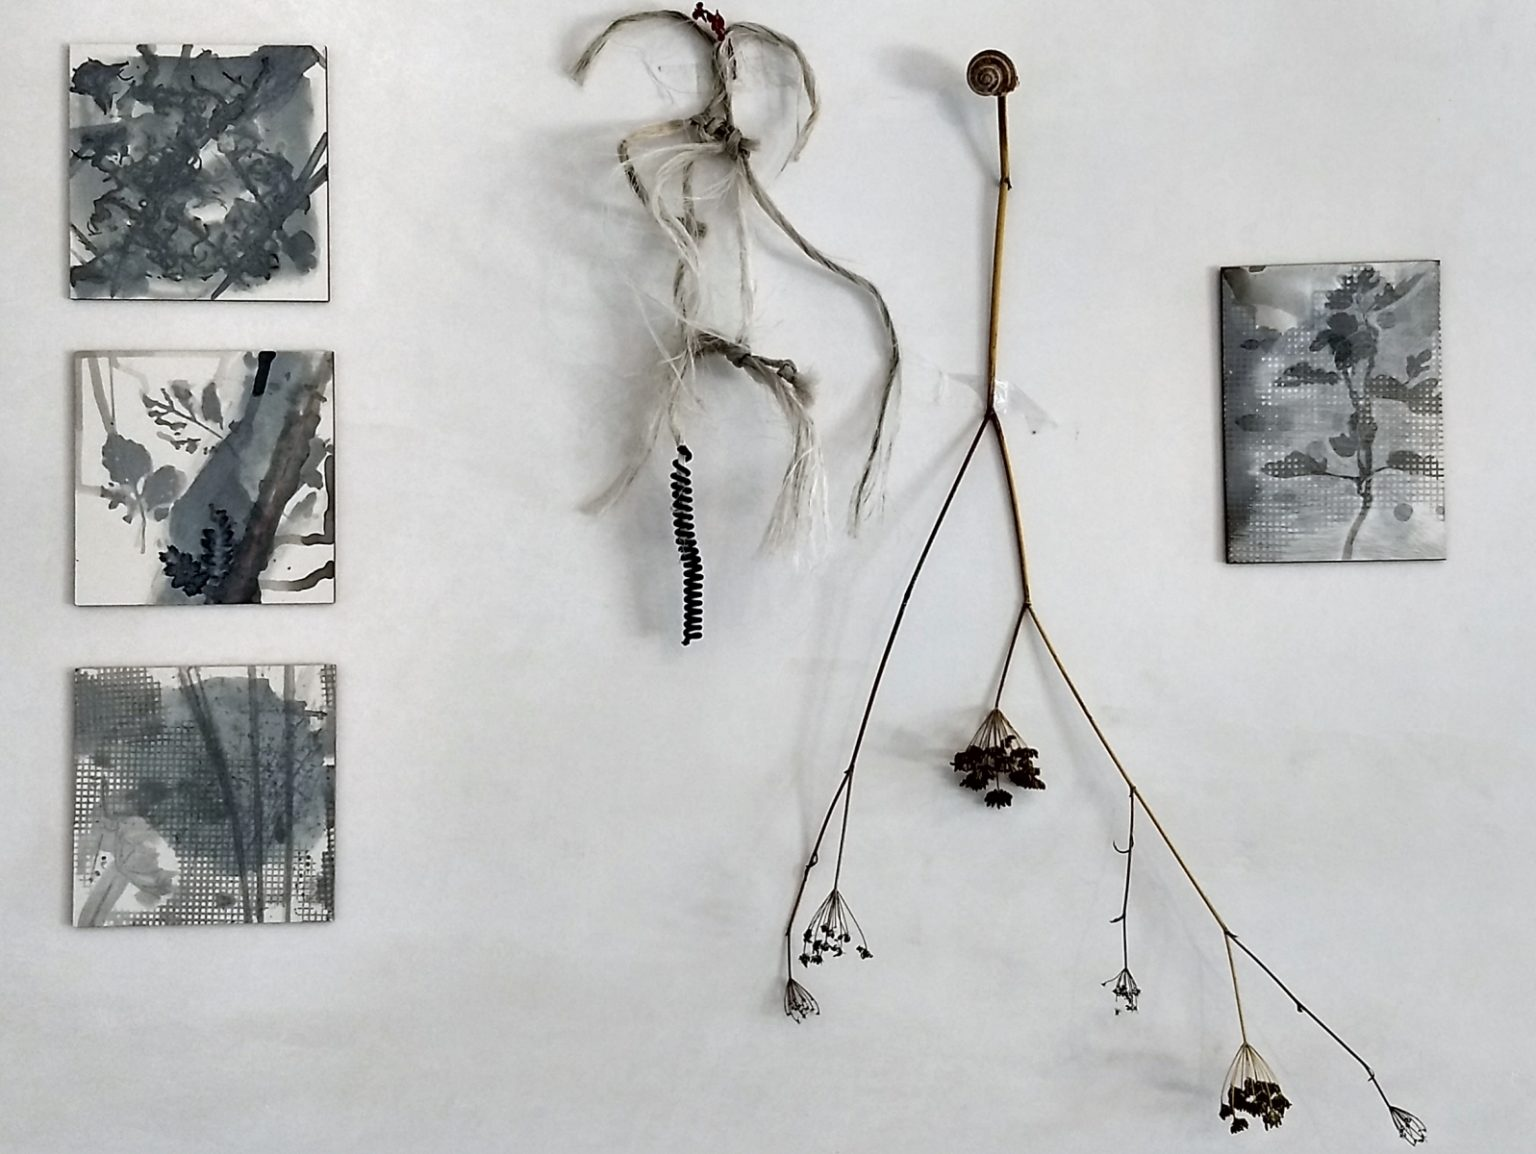 Shadows of the Past and Future, drawings and found objects, ink and sgraffito on clayboard, 2019